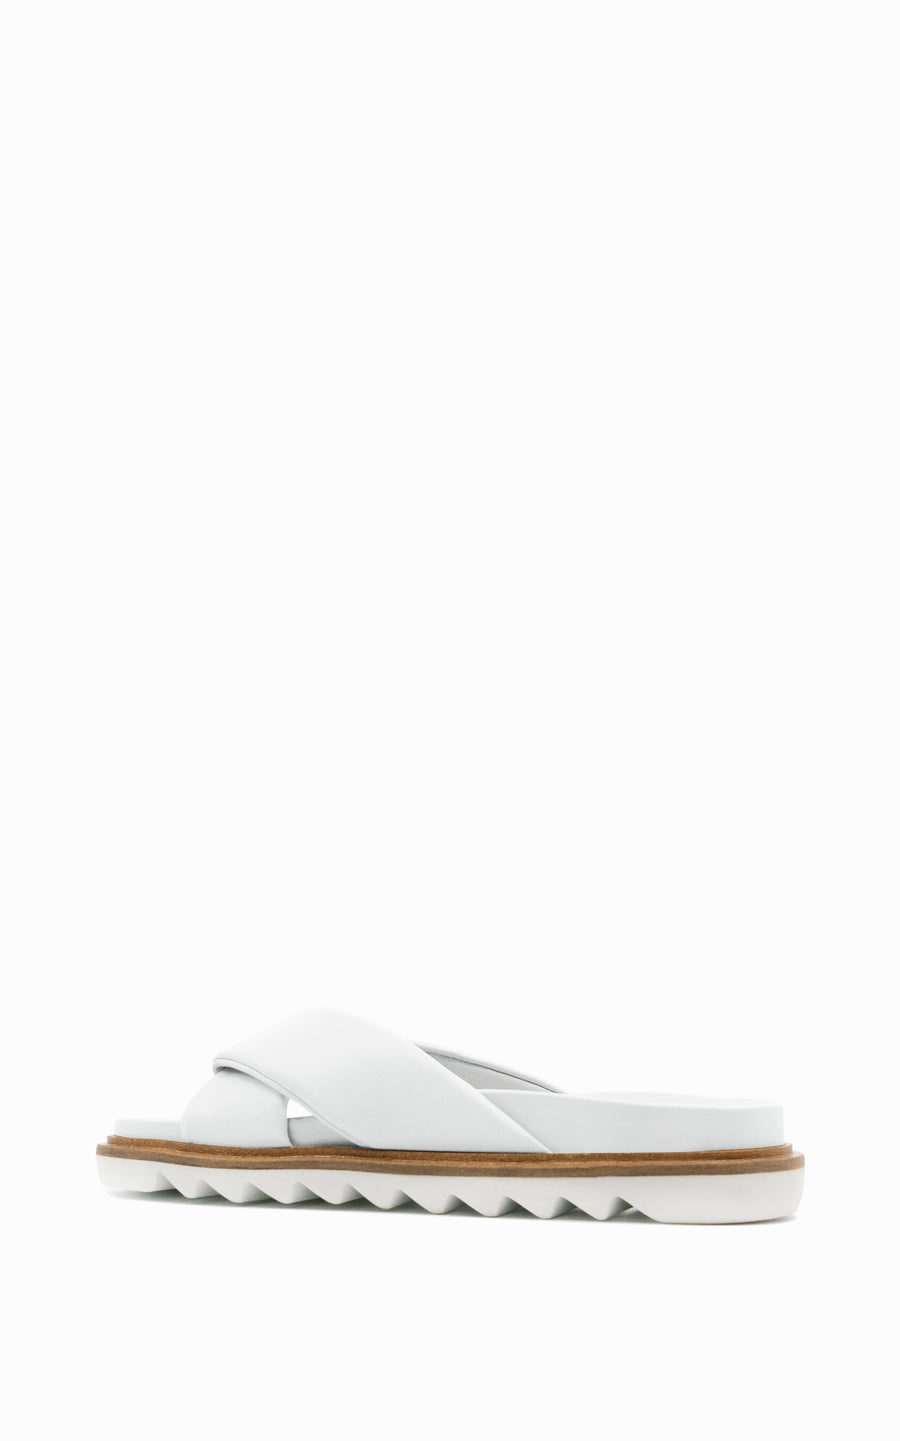 Preorder Padded Band Slide | White